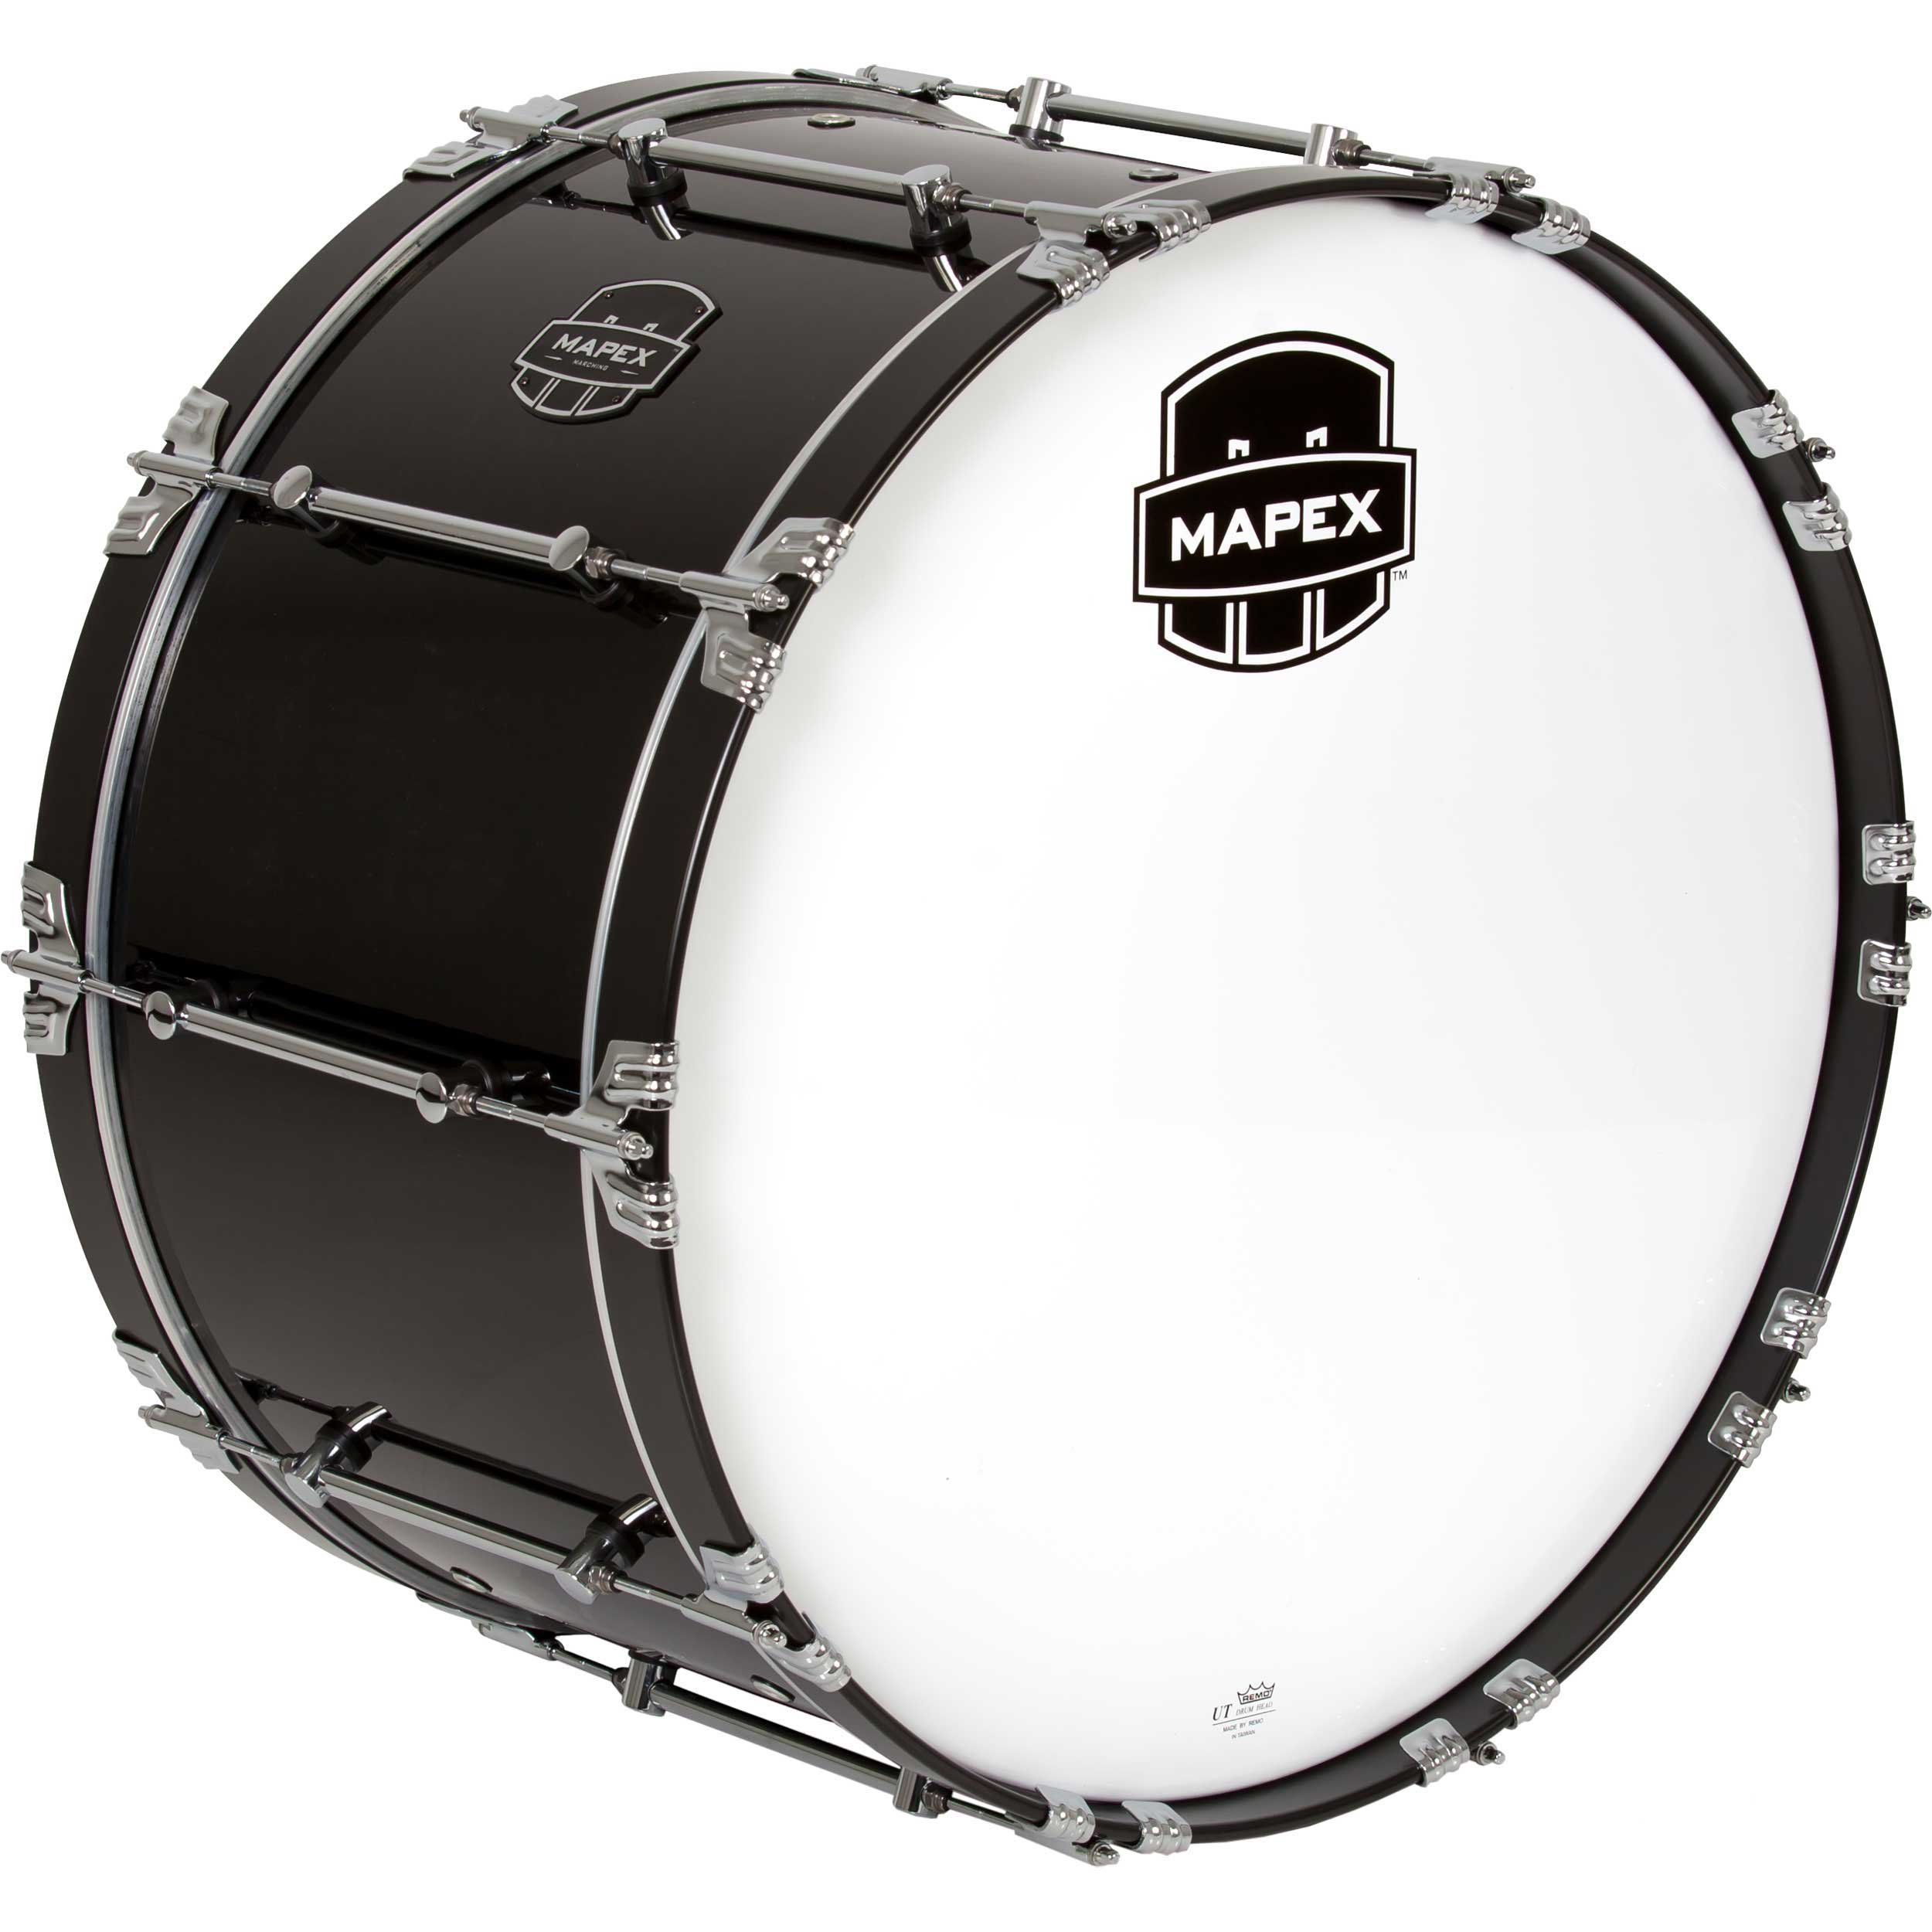 "Mapex 30"" Quantum Marching Bass Drum in Gloss Black"